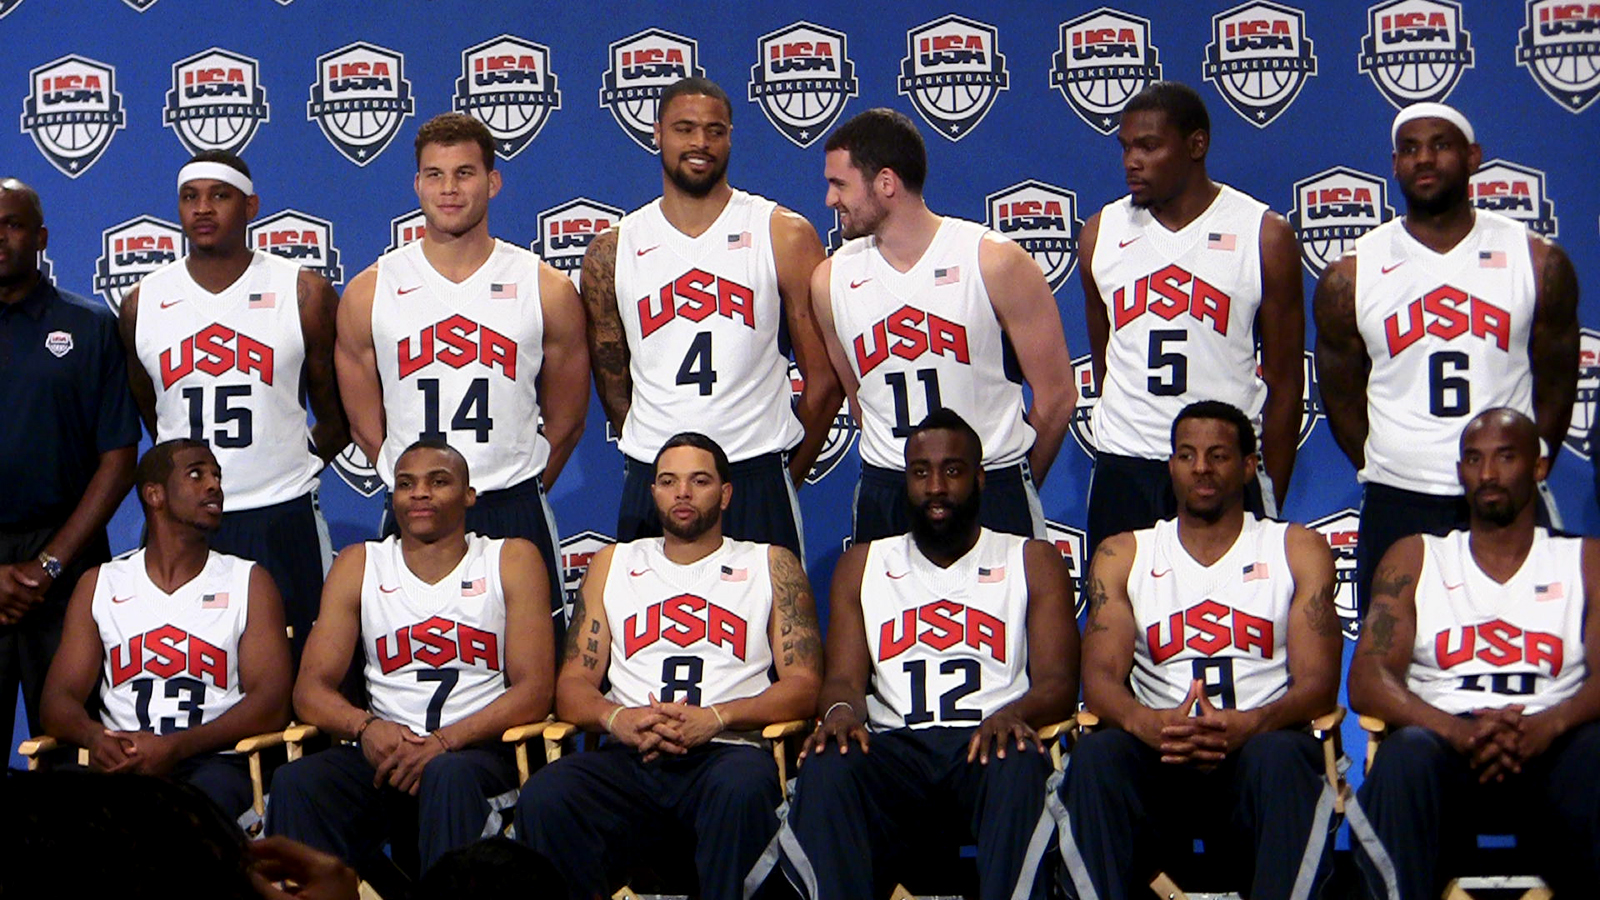 Basketball Team Usa 2012 HD Wallpapers Download Free Wallpapers in HD ...